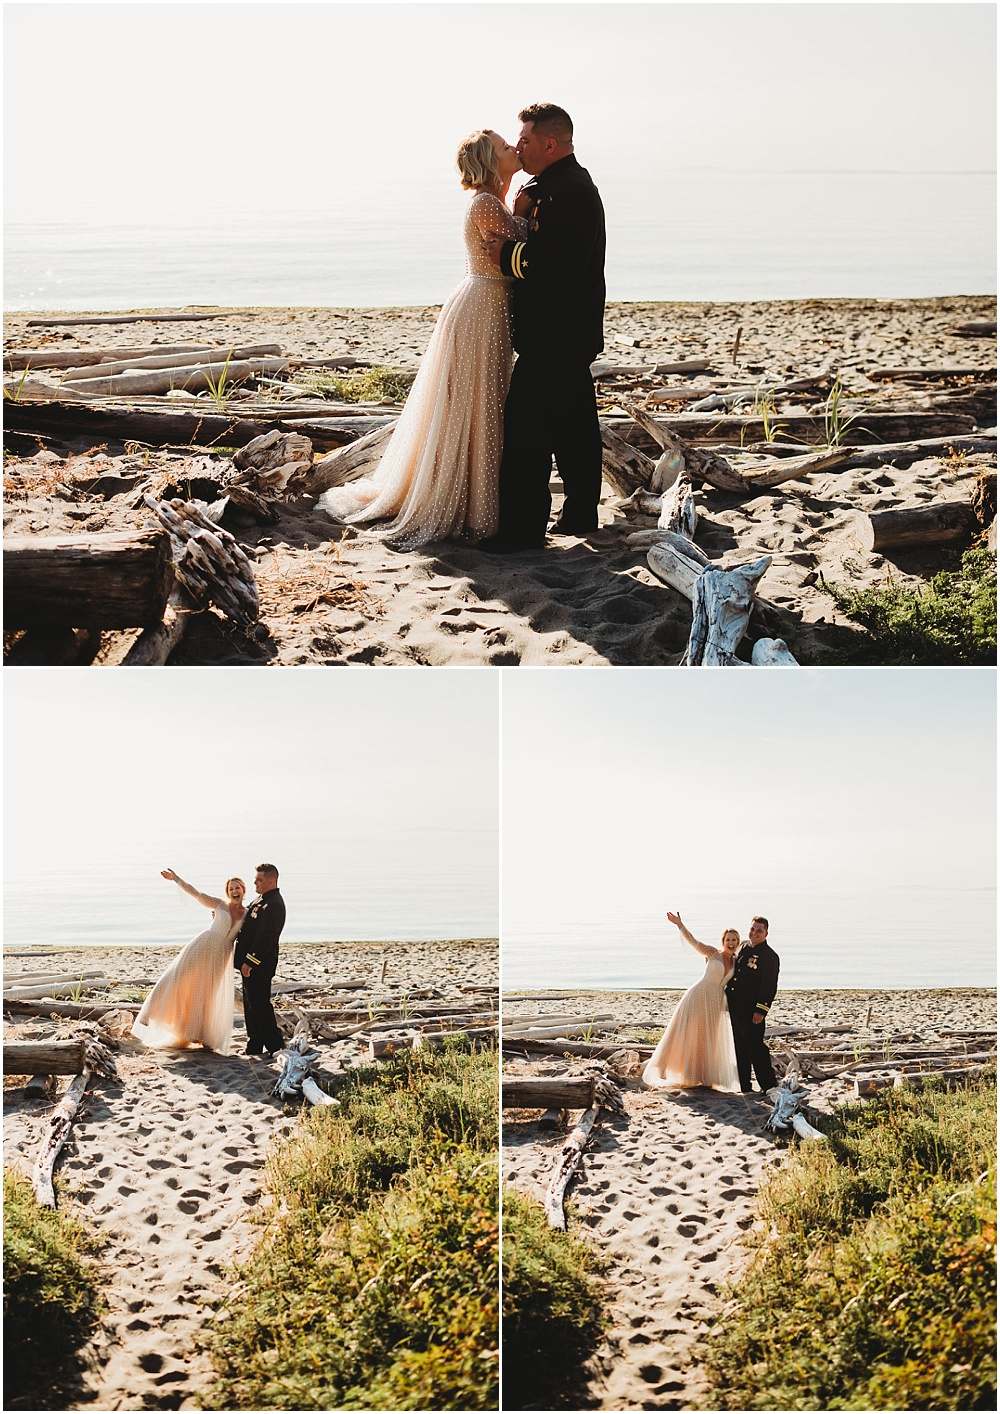 Bride and groom share first kiss on beach